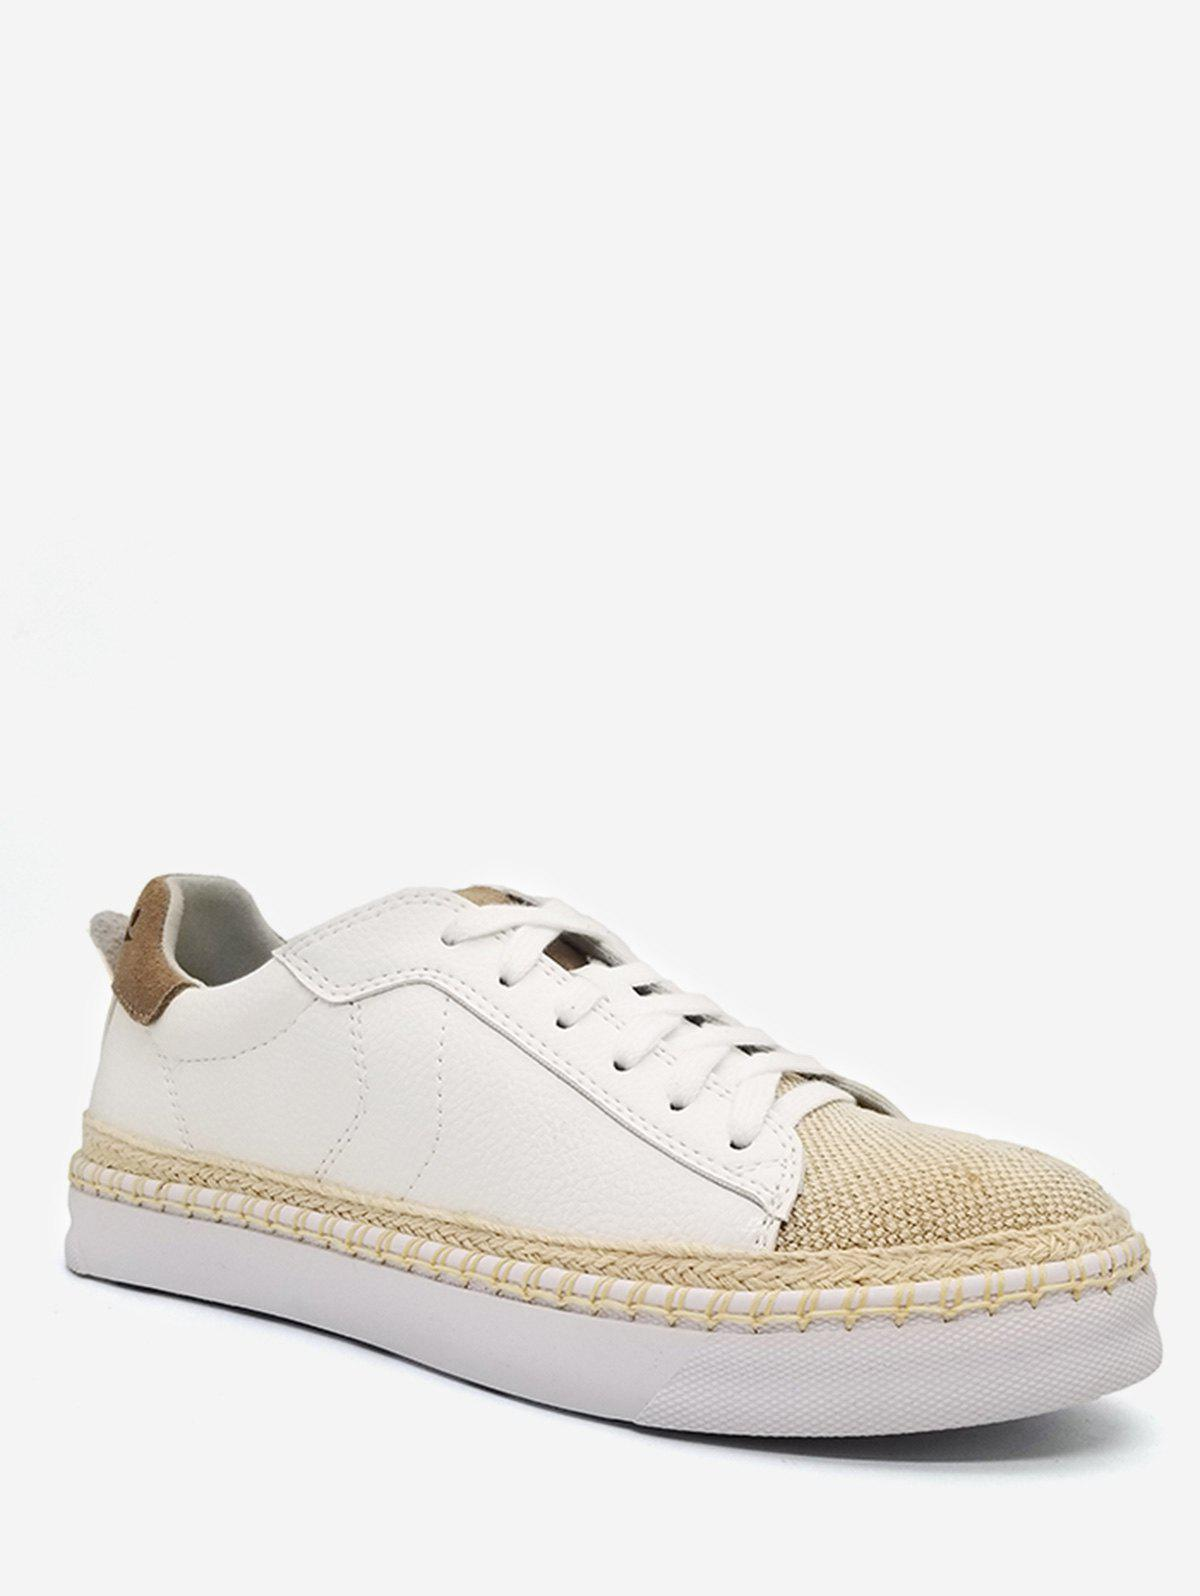 Woven Straw Toe Platform Skate Sneakers - WHITE 39